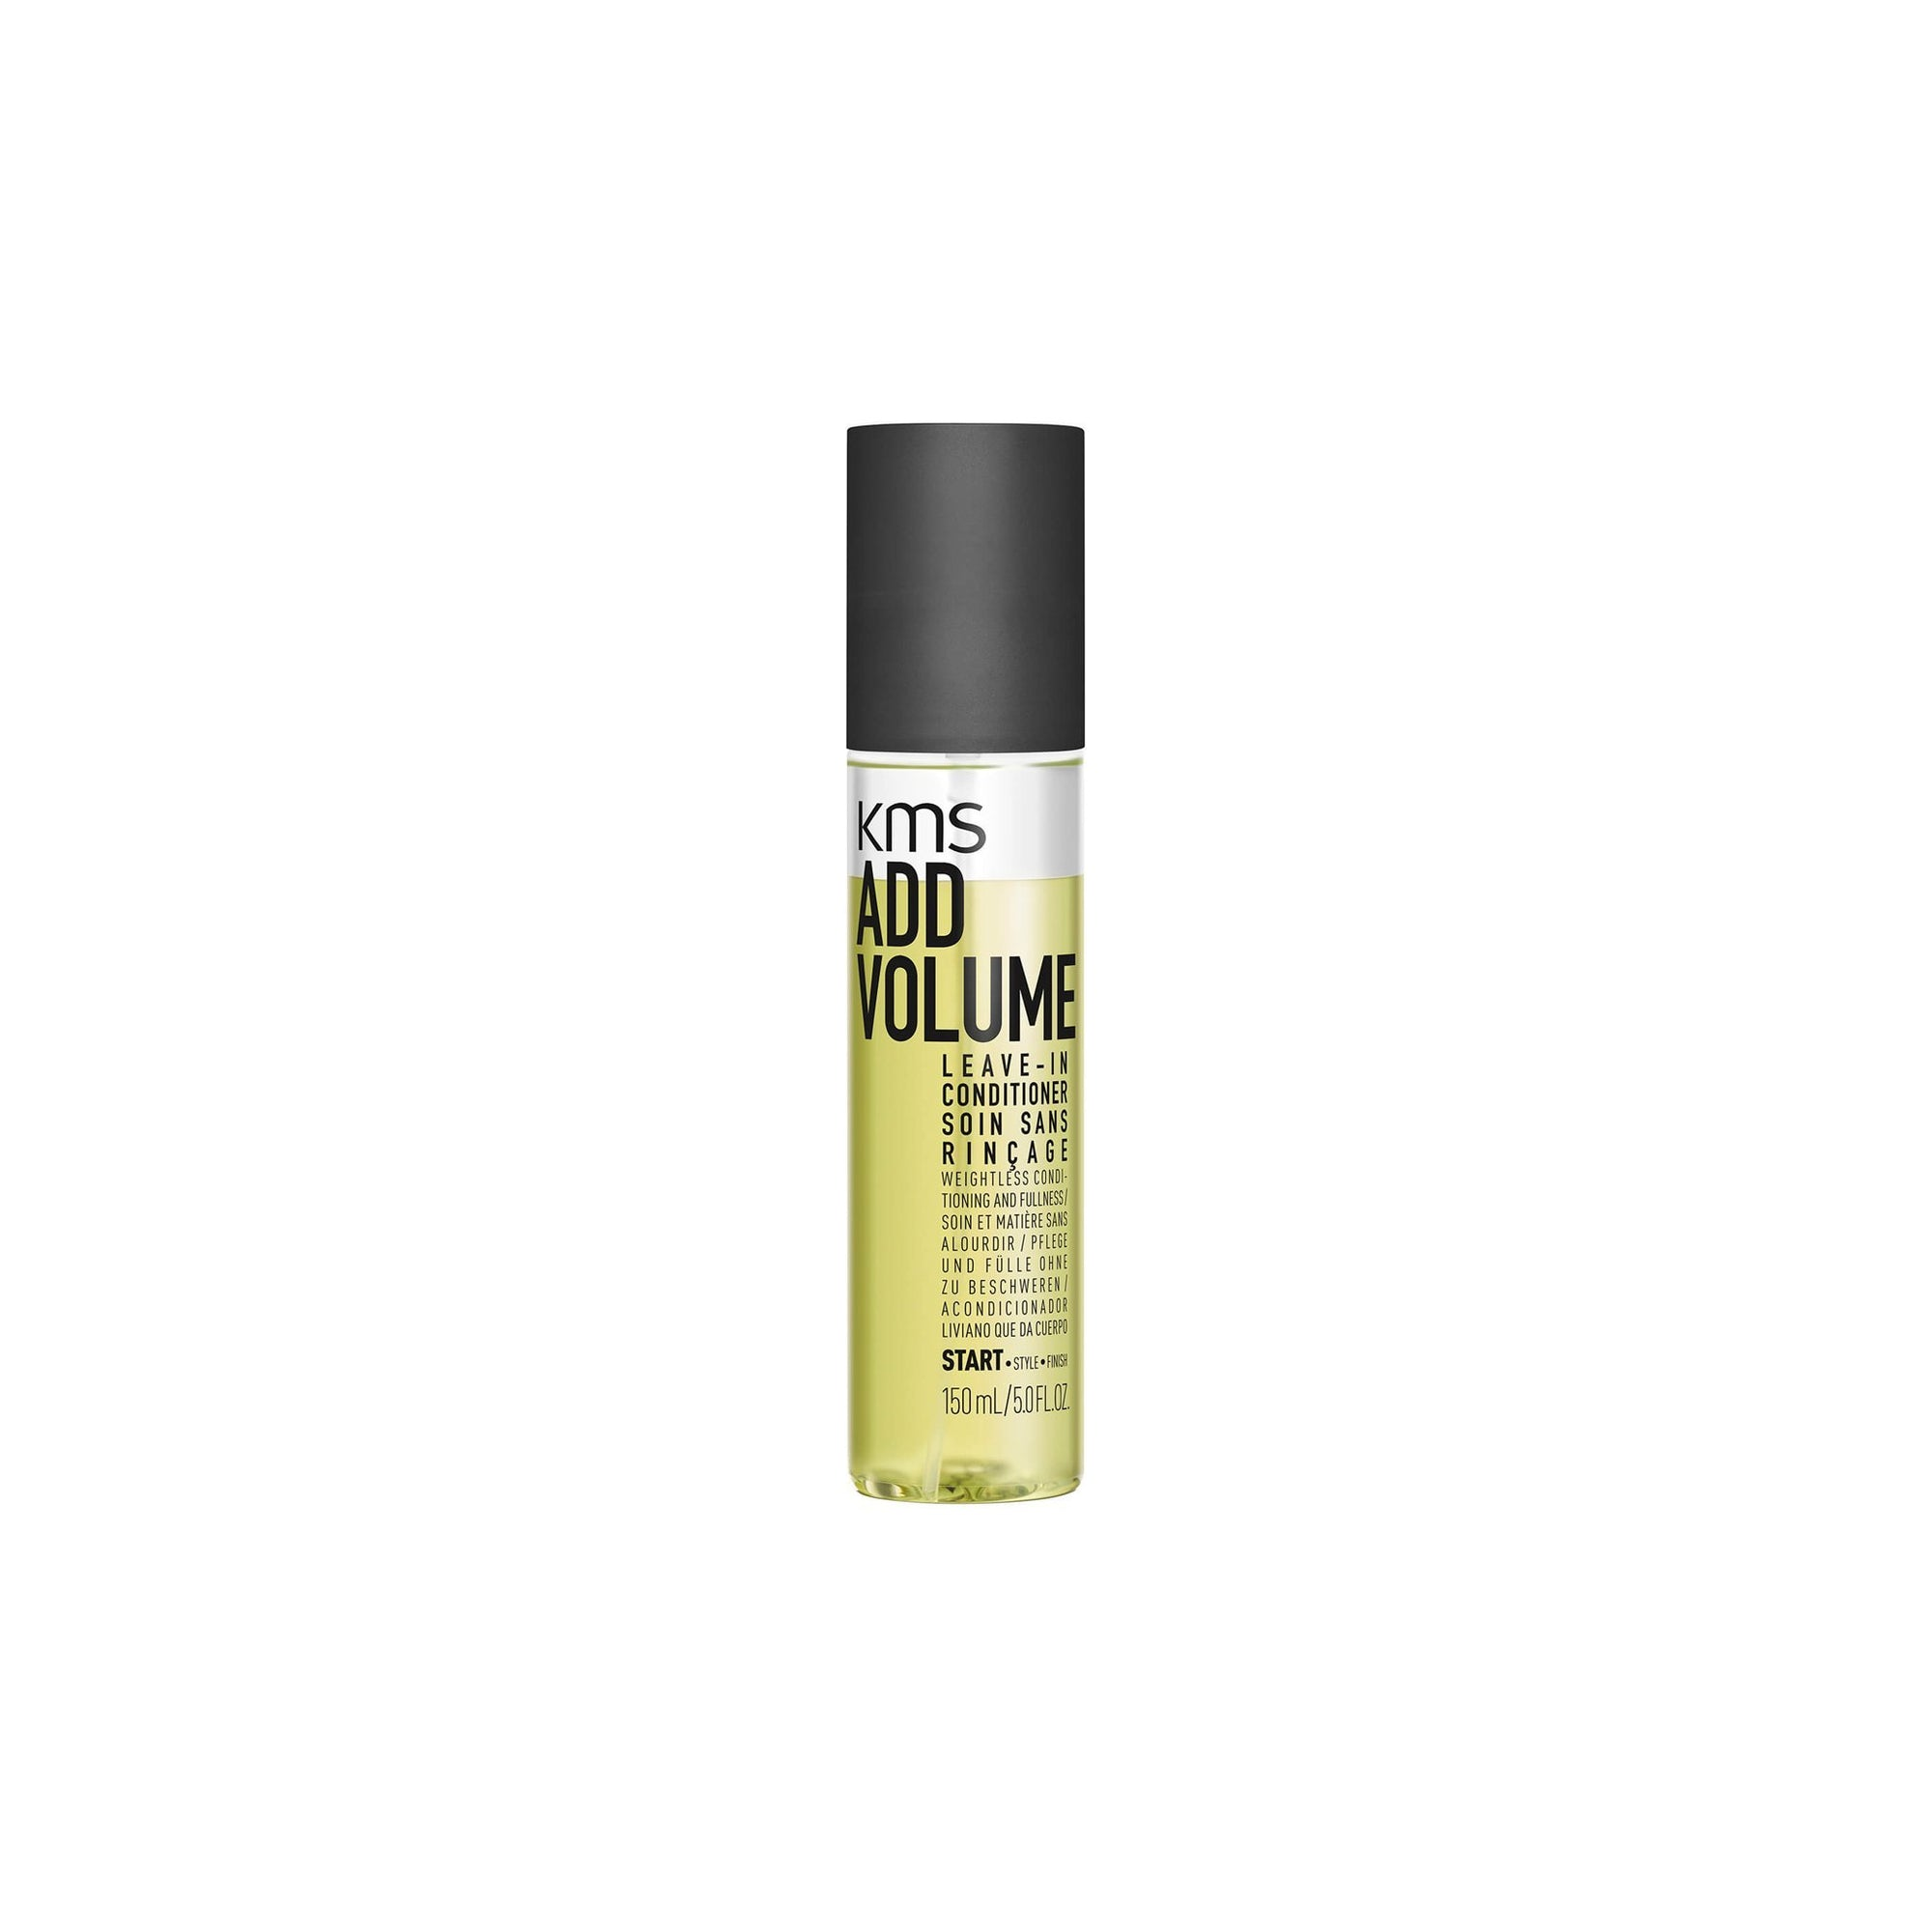 Kms California Add Volume Leave-in Conditioner 150ml